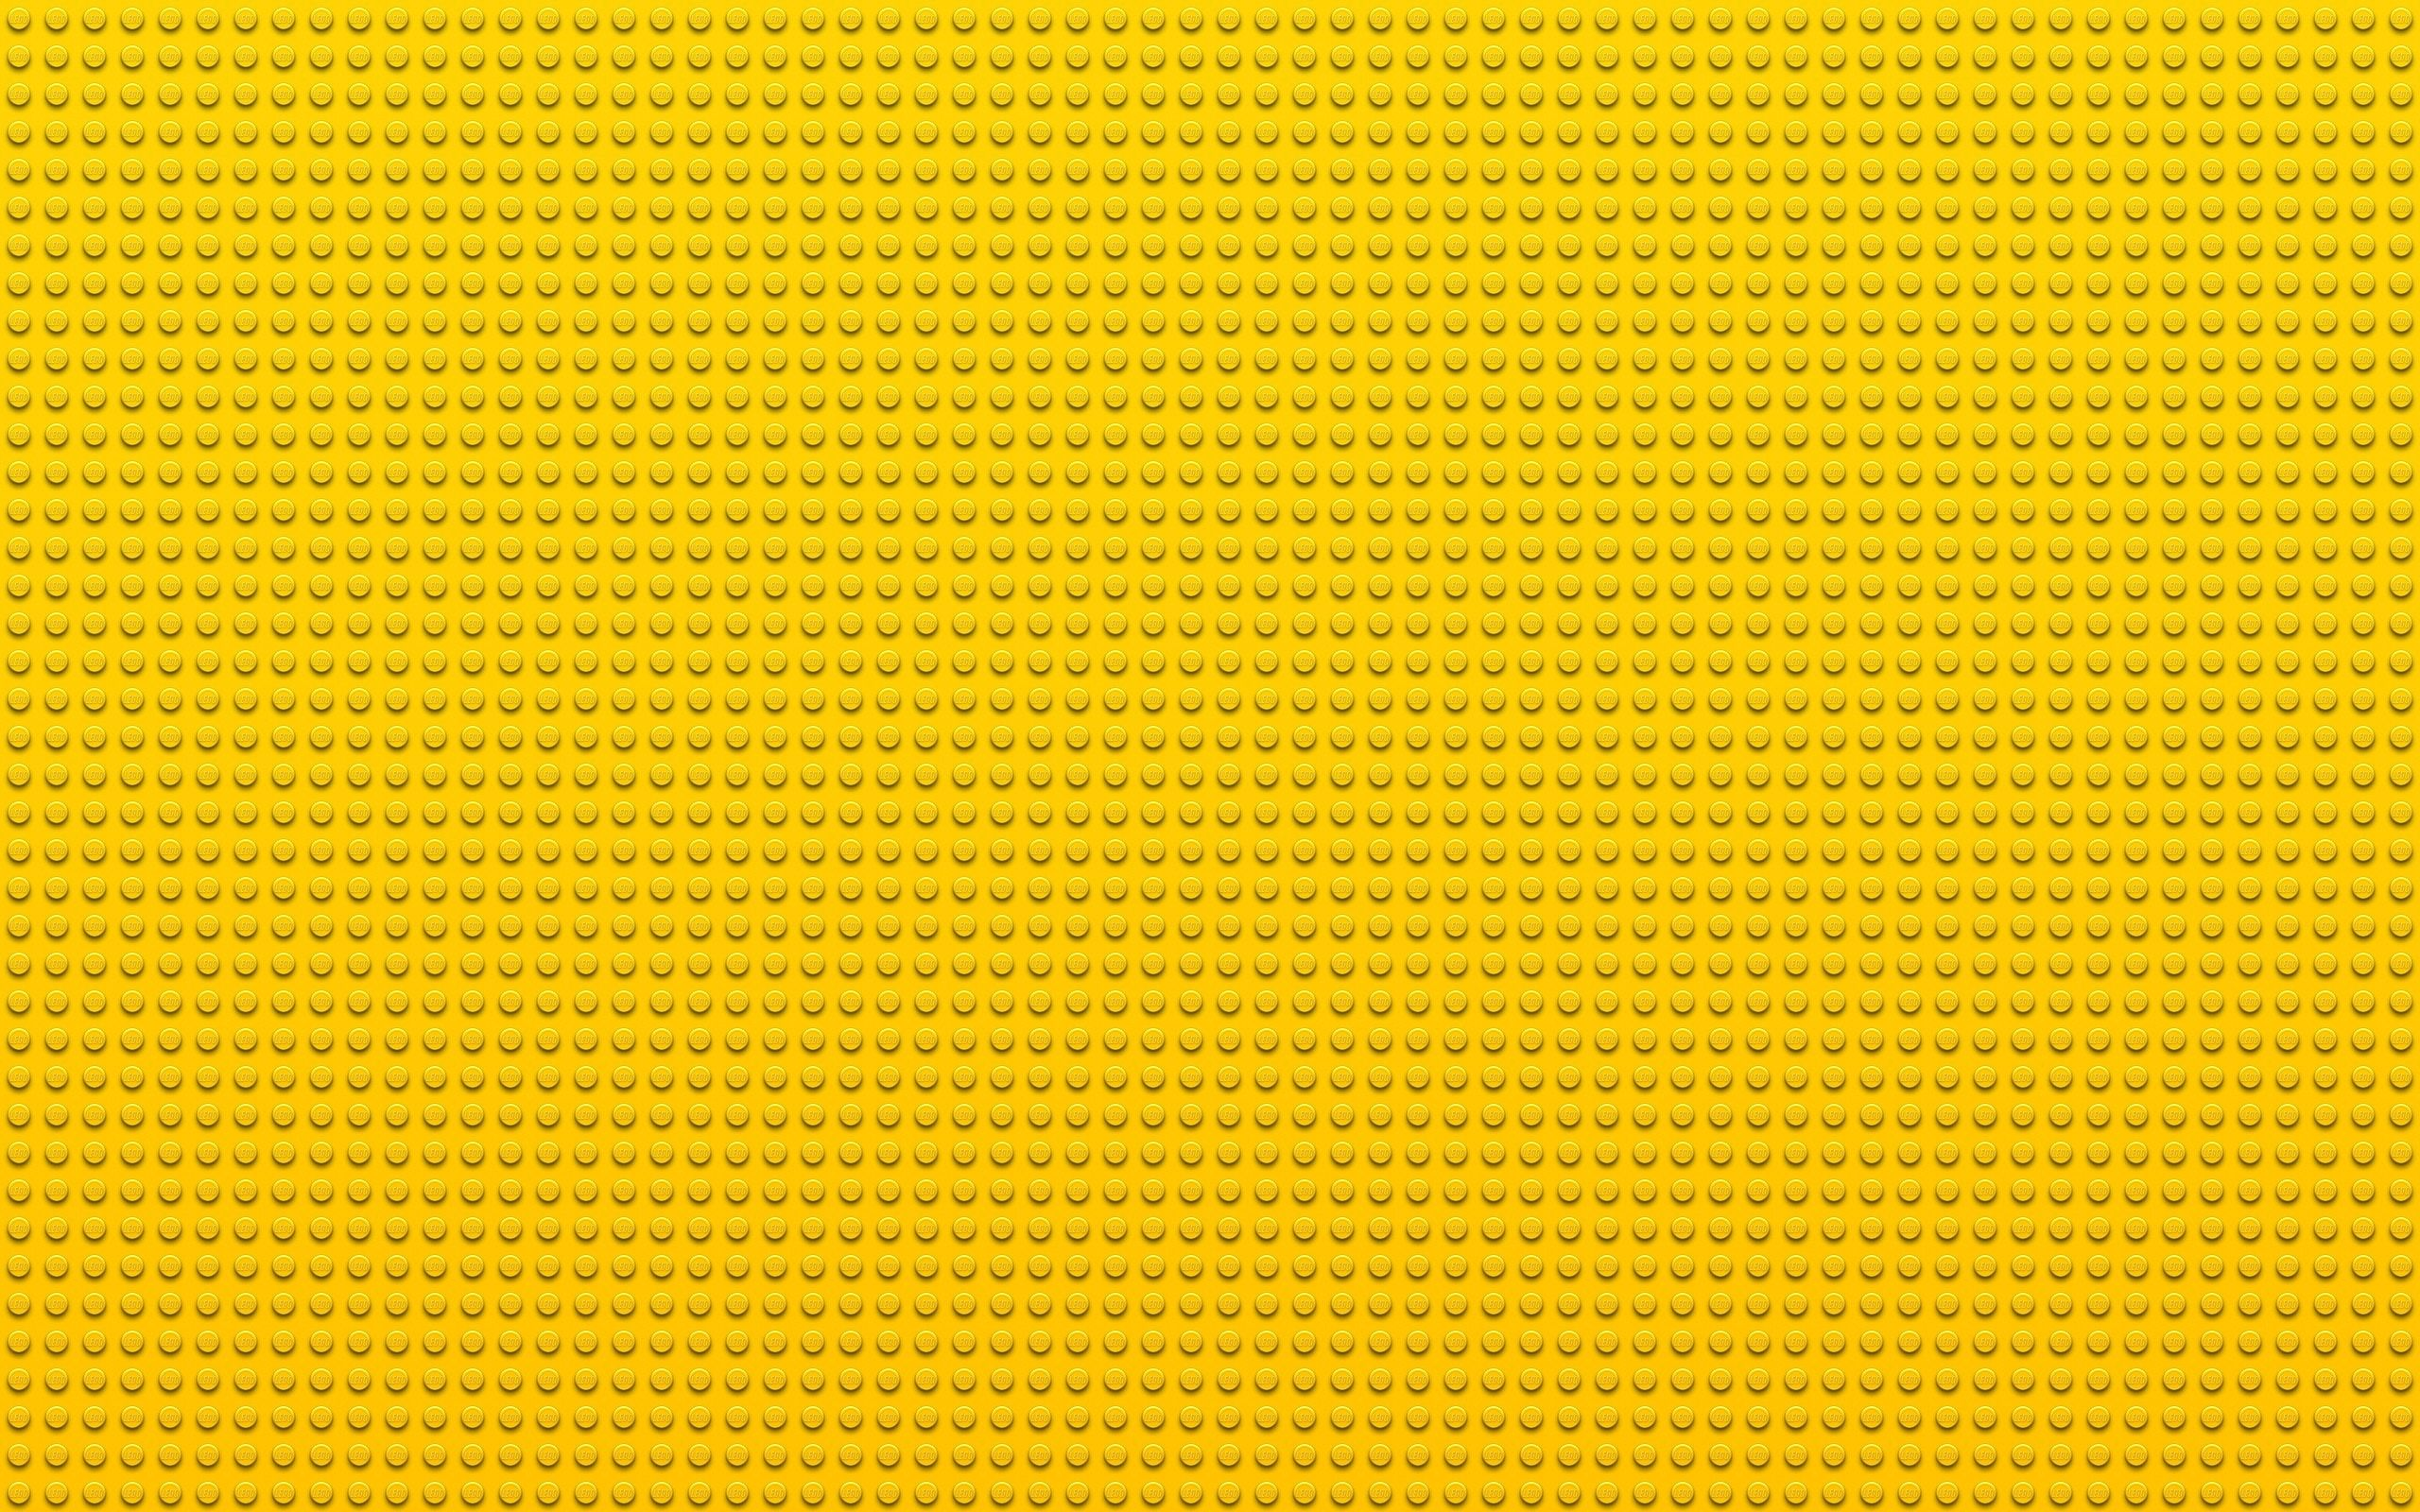 Lego Backgrounds